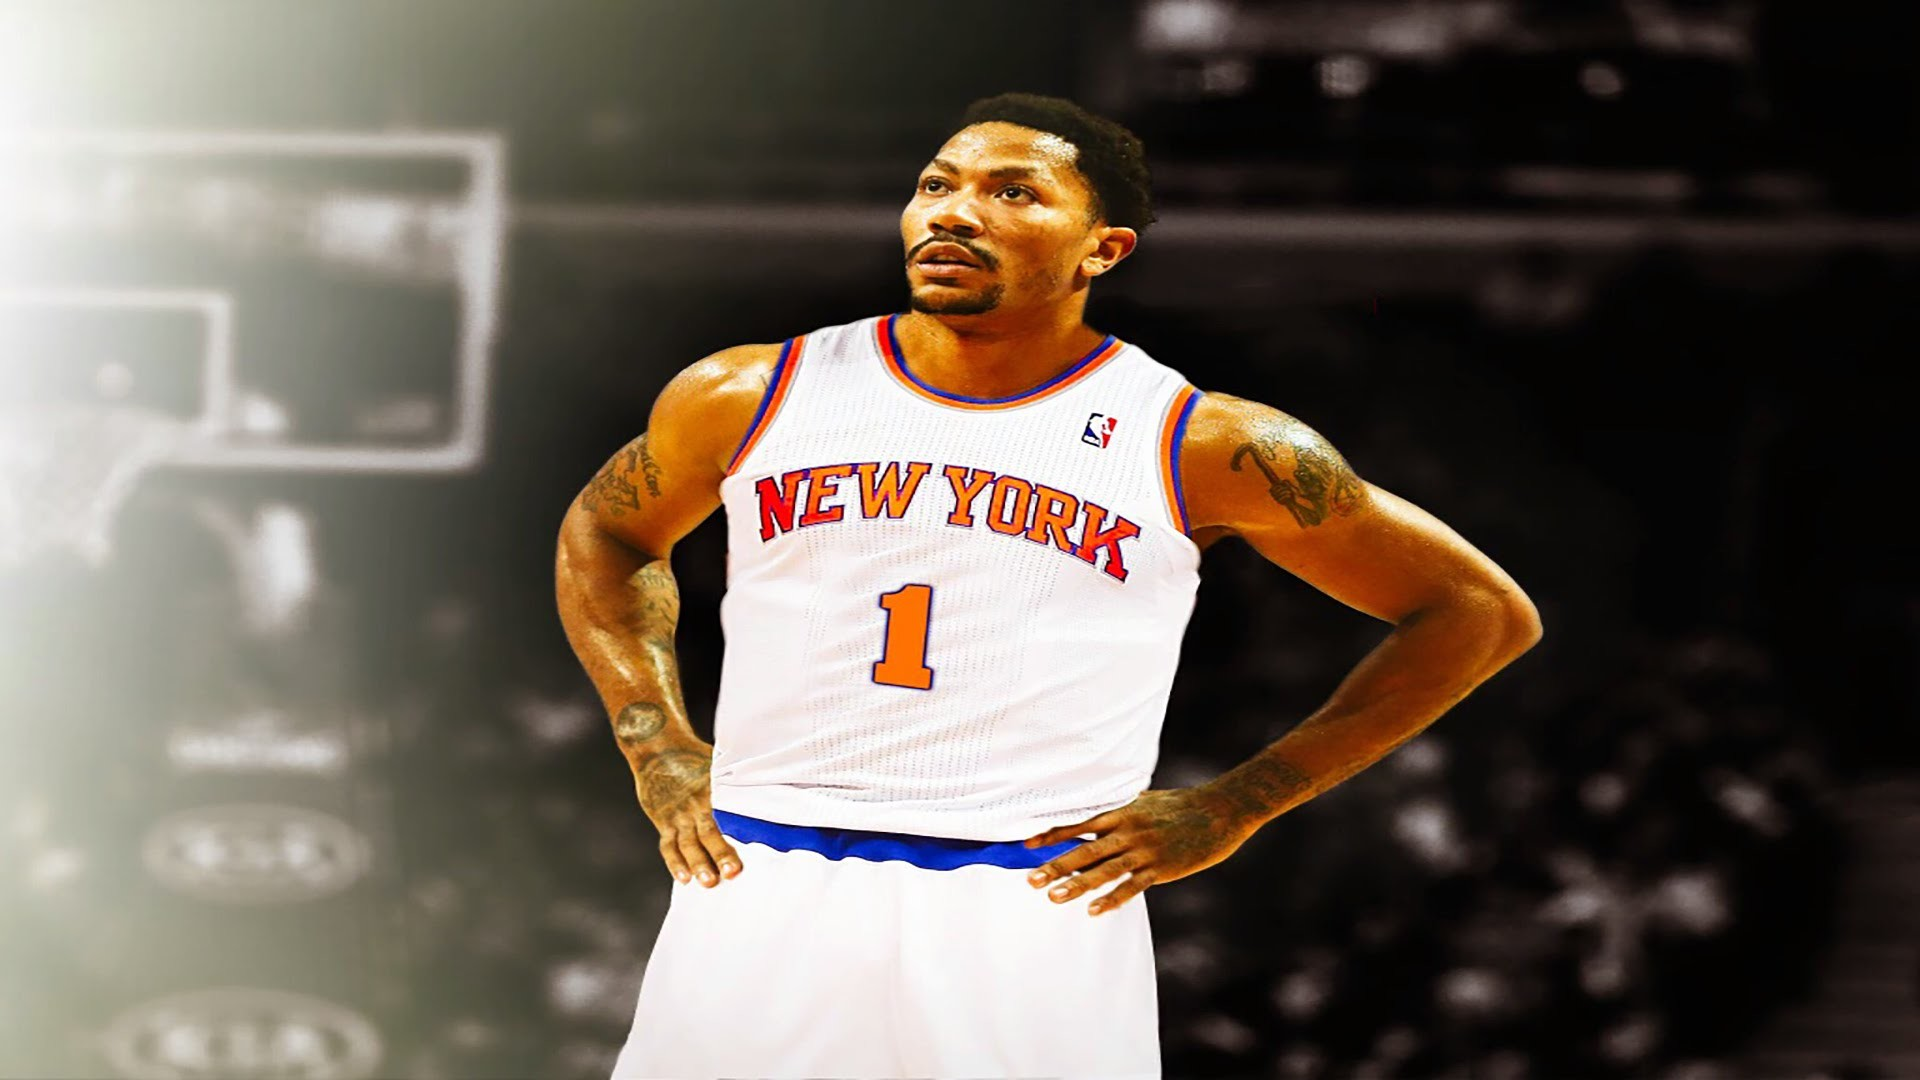 1920x1080 DERRICK ROSE AU NEW YORK KNICKS !!